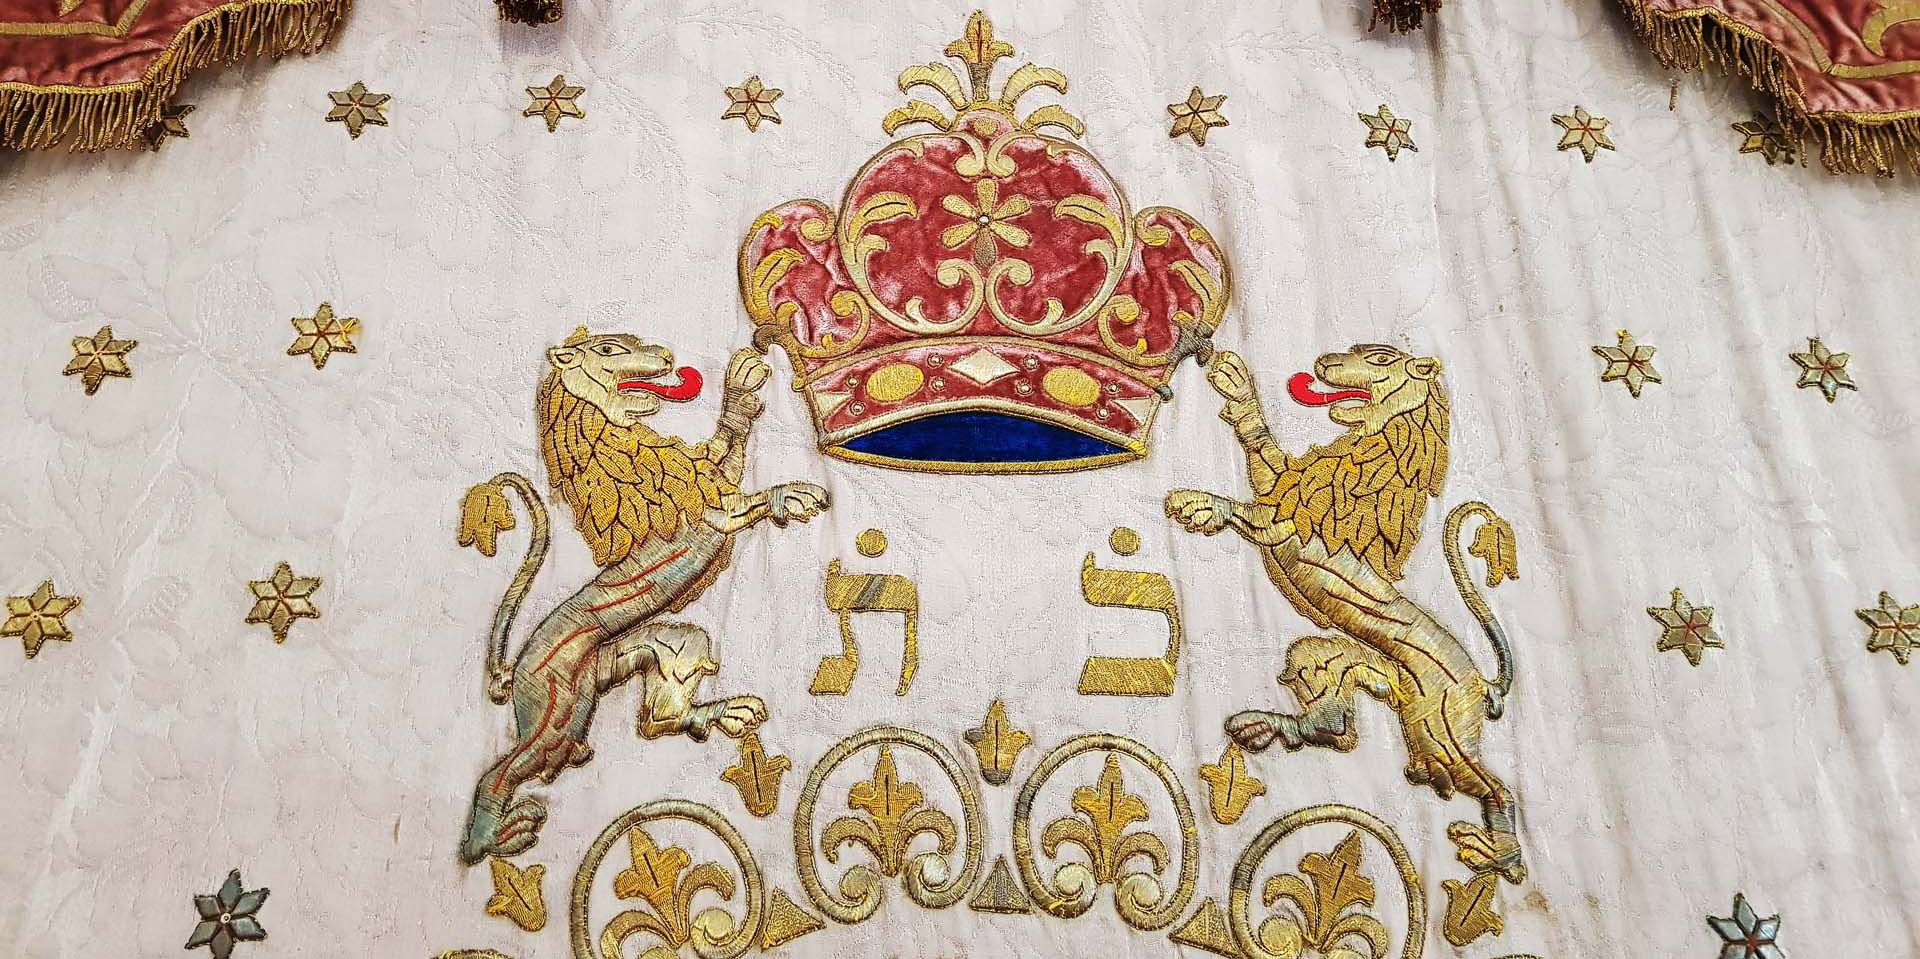 Torah Ark curtain Eisenstadt 1910,  Detail above the main text